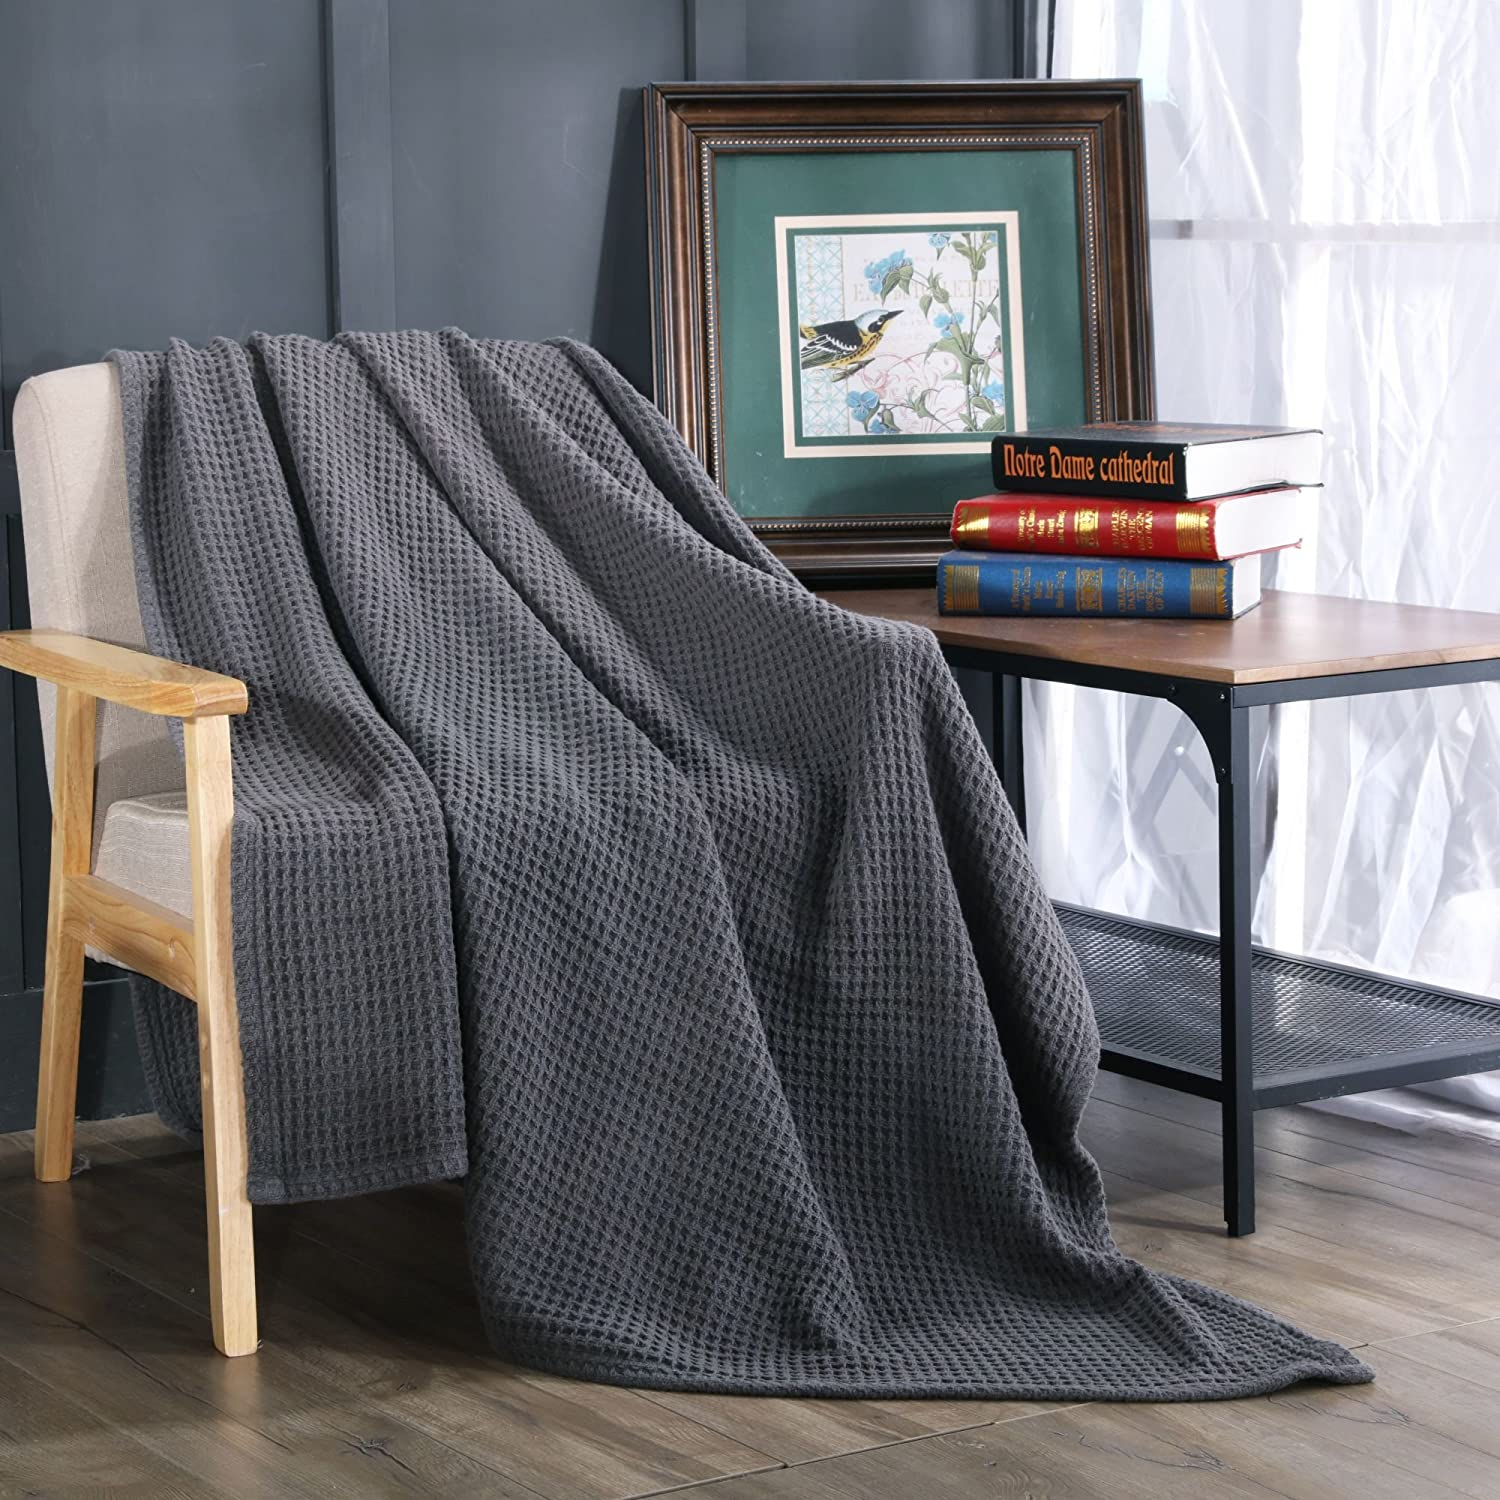 Kasentex Detailed Stitched Stone-Washed Quilt Nostalgic Design Ultra Soft Throw 100% Cotton, 70x50, Grey